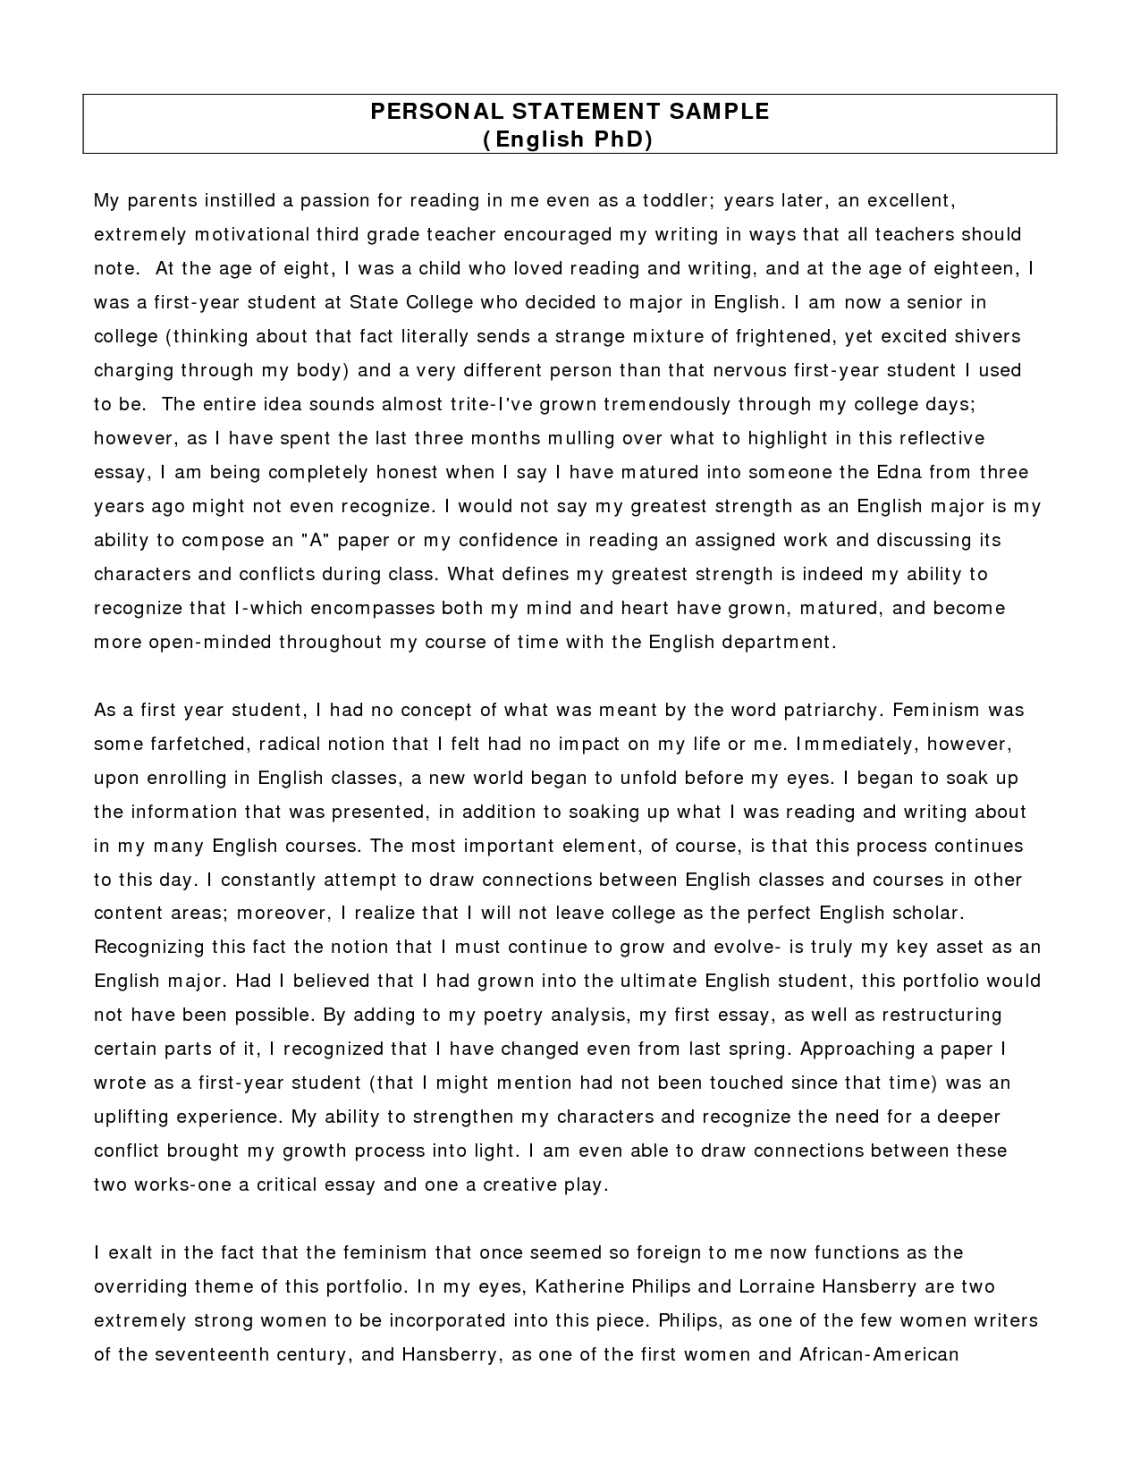 Masters of education admission essay